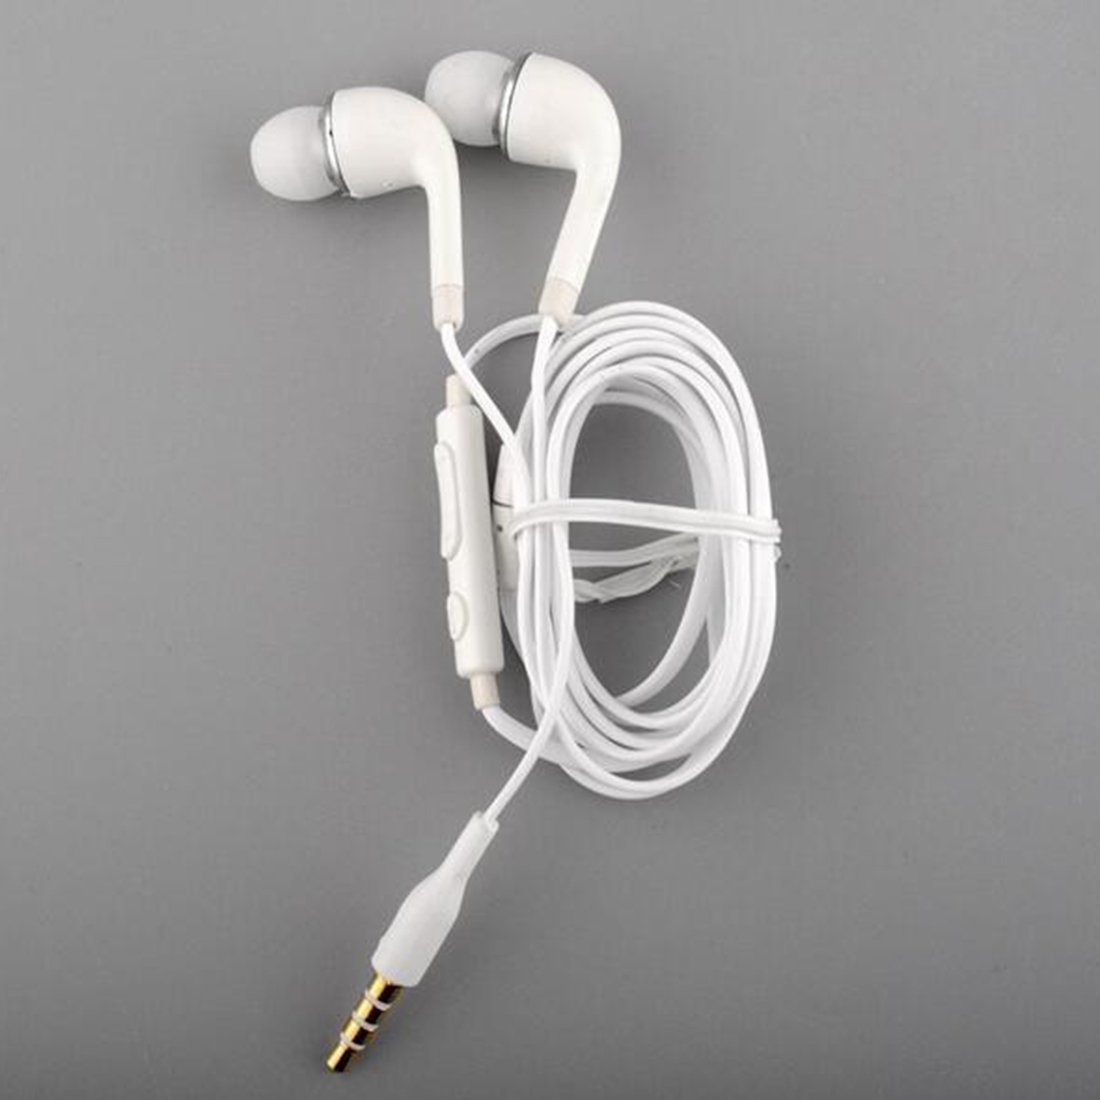 Marsnaska Brand New & High Quality White Handsfree Headset In Ear Earphones For SAMSUNG GALAXY S4 With Remote MIC s6 3 5mm in ear earphones headset with mic volume control remote control for samsung galaxy s5 s4 s7 s6 note 5 4 3 xiaomi 2